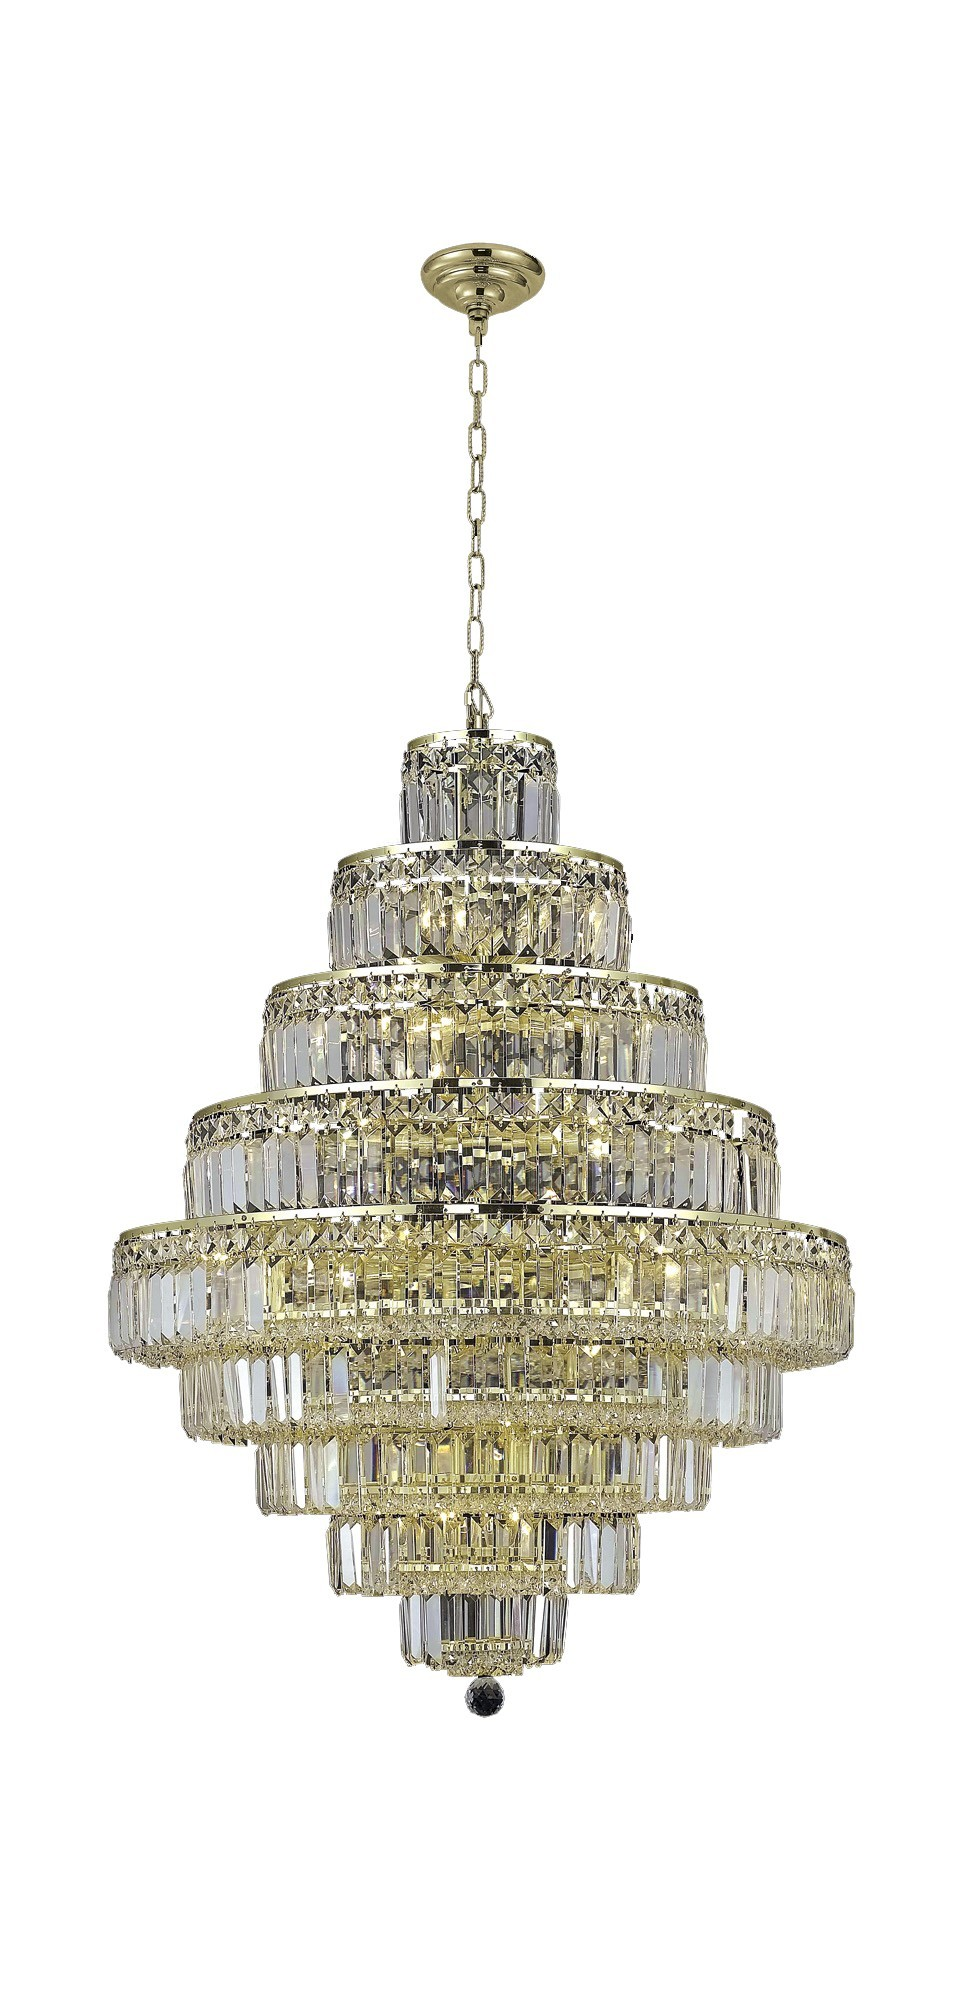 2038 Maxime Collection Chandelier D:30in H:41in Lt:20 Gold Finish (Elegant Cut Crystals)